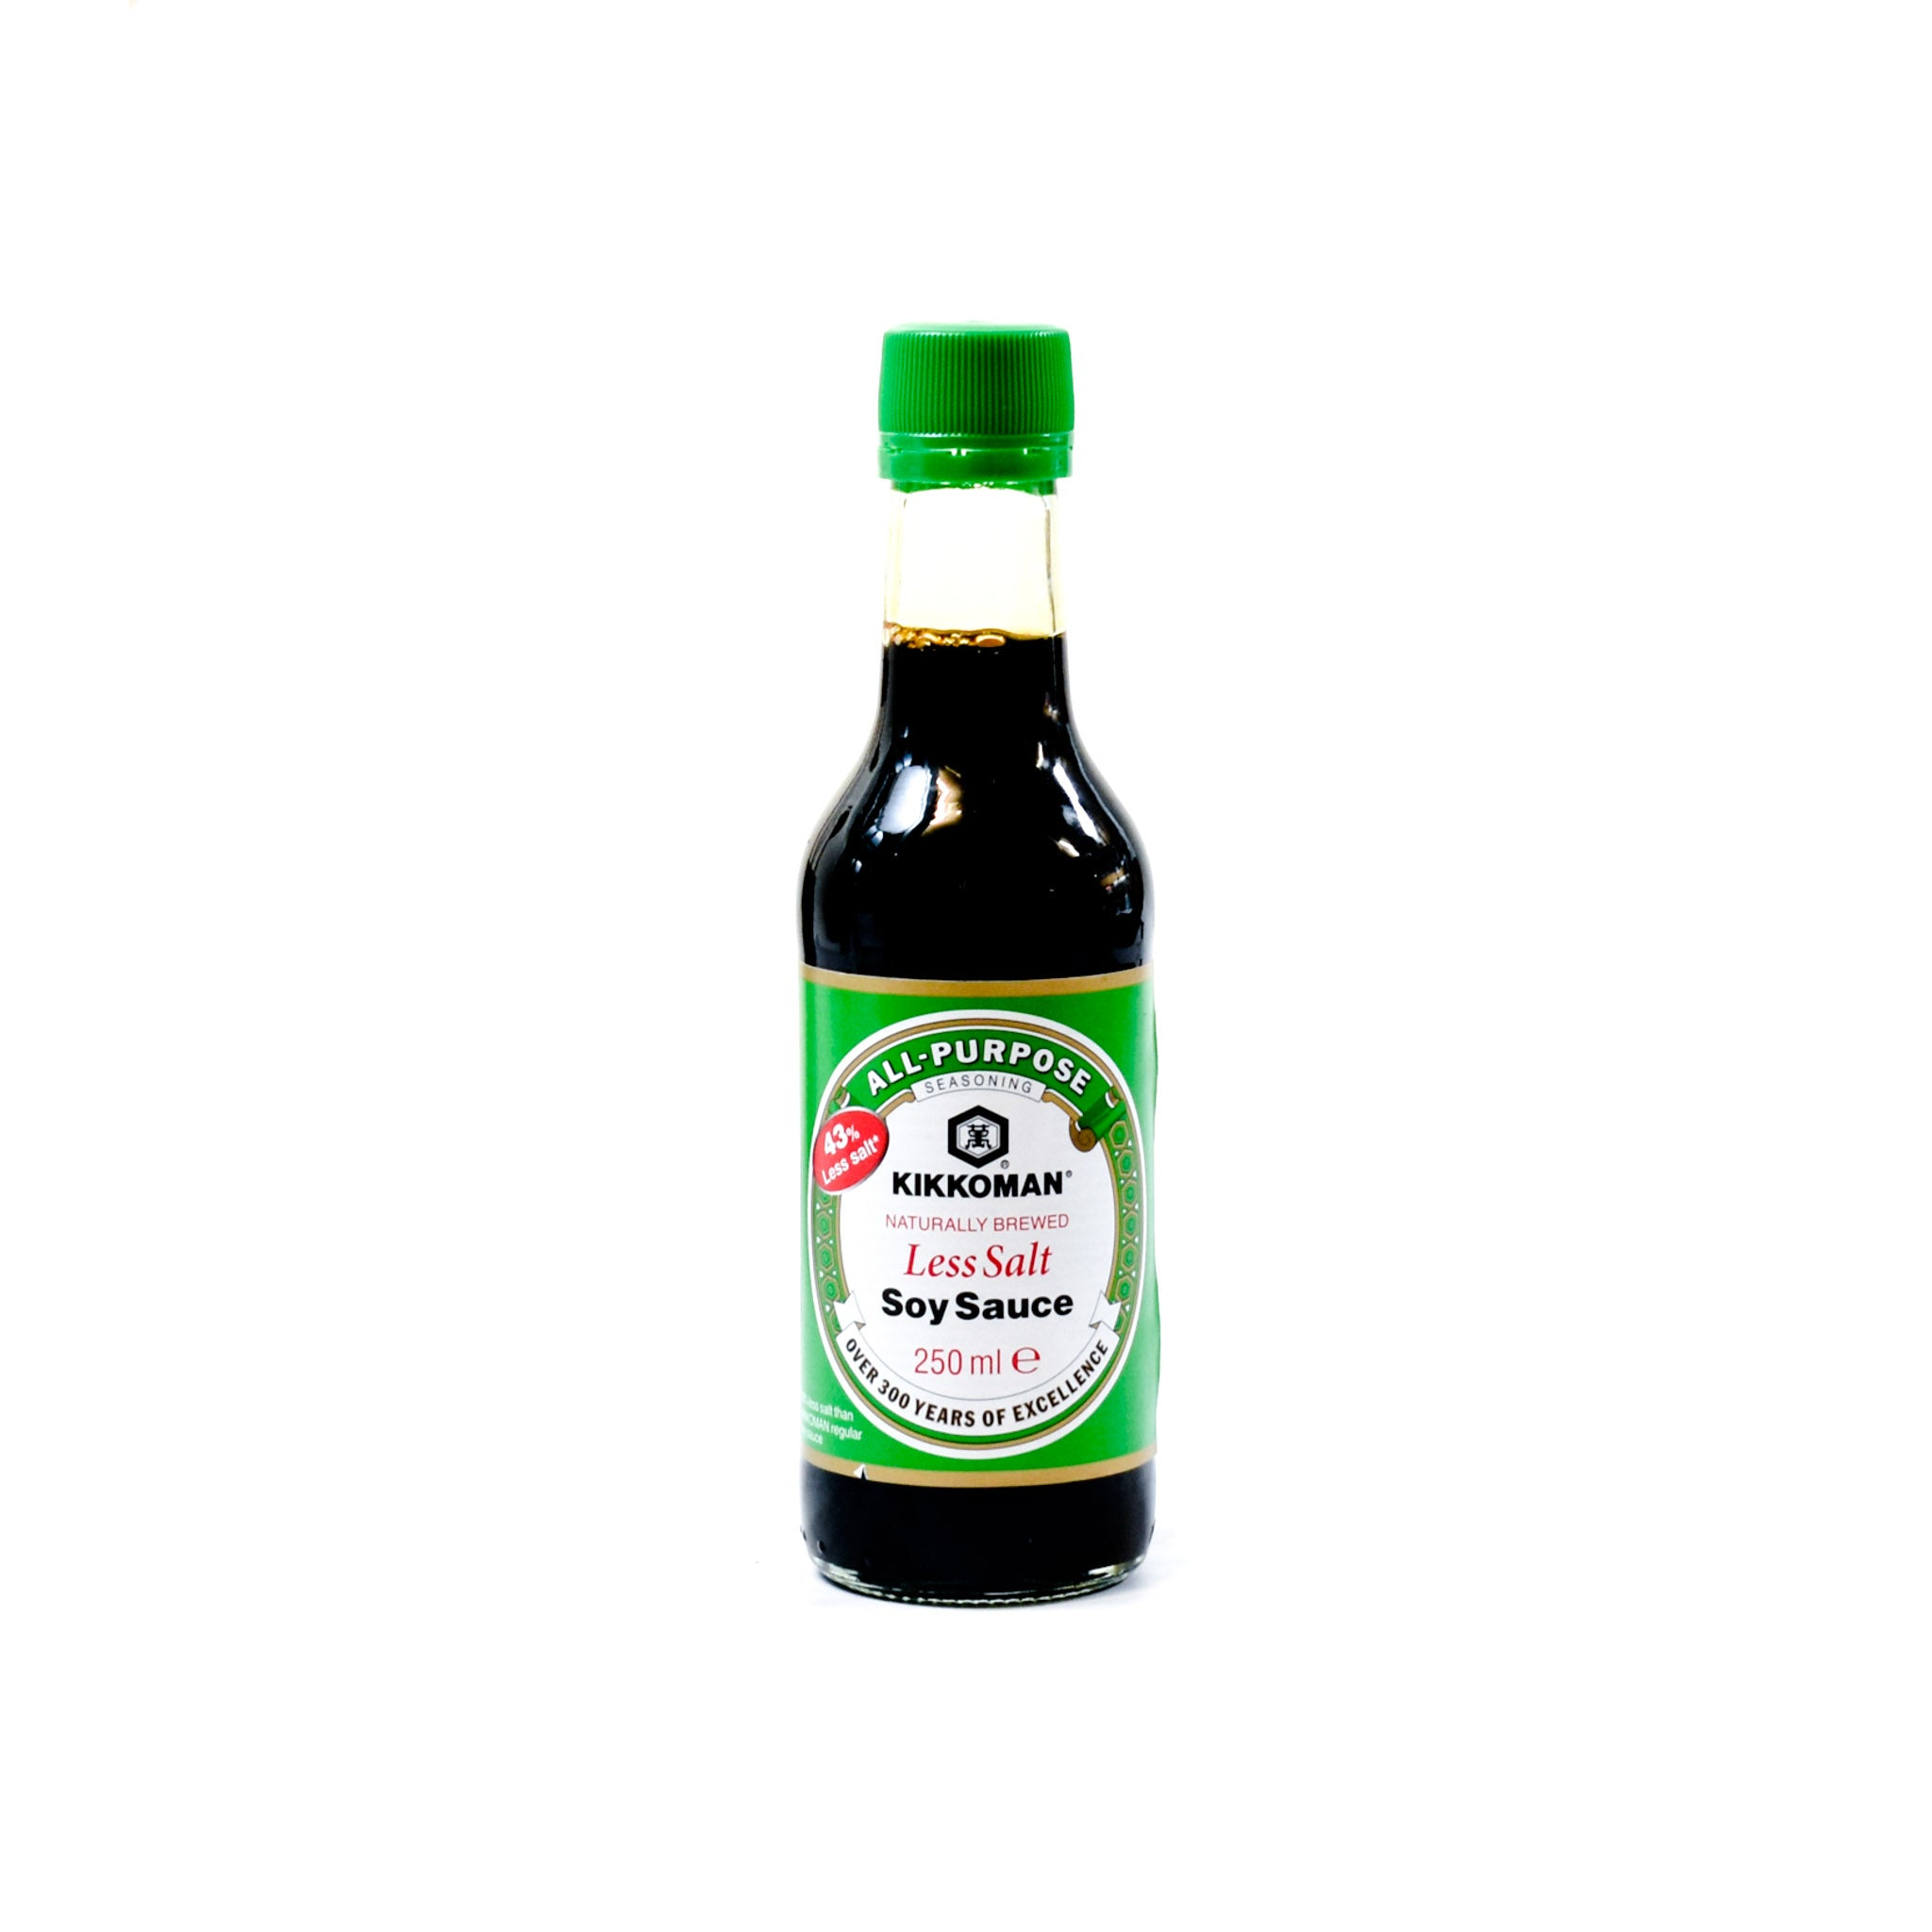 Kikkoman Soy Sauce - Less Salt 250ml